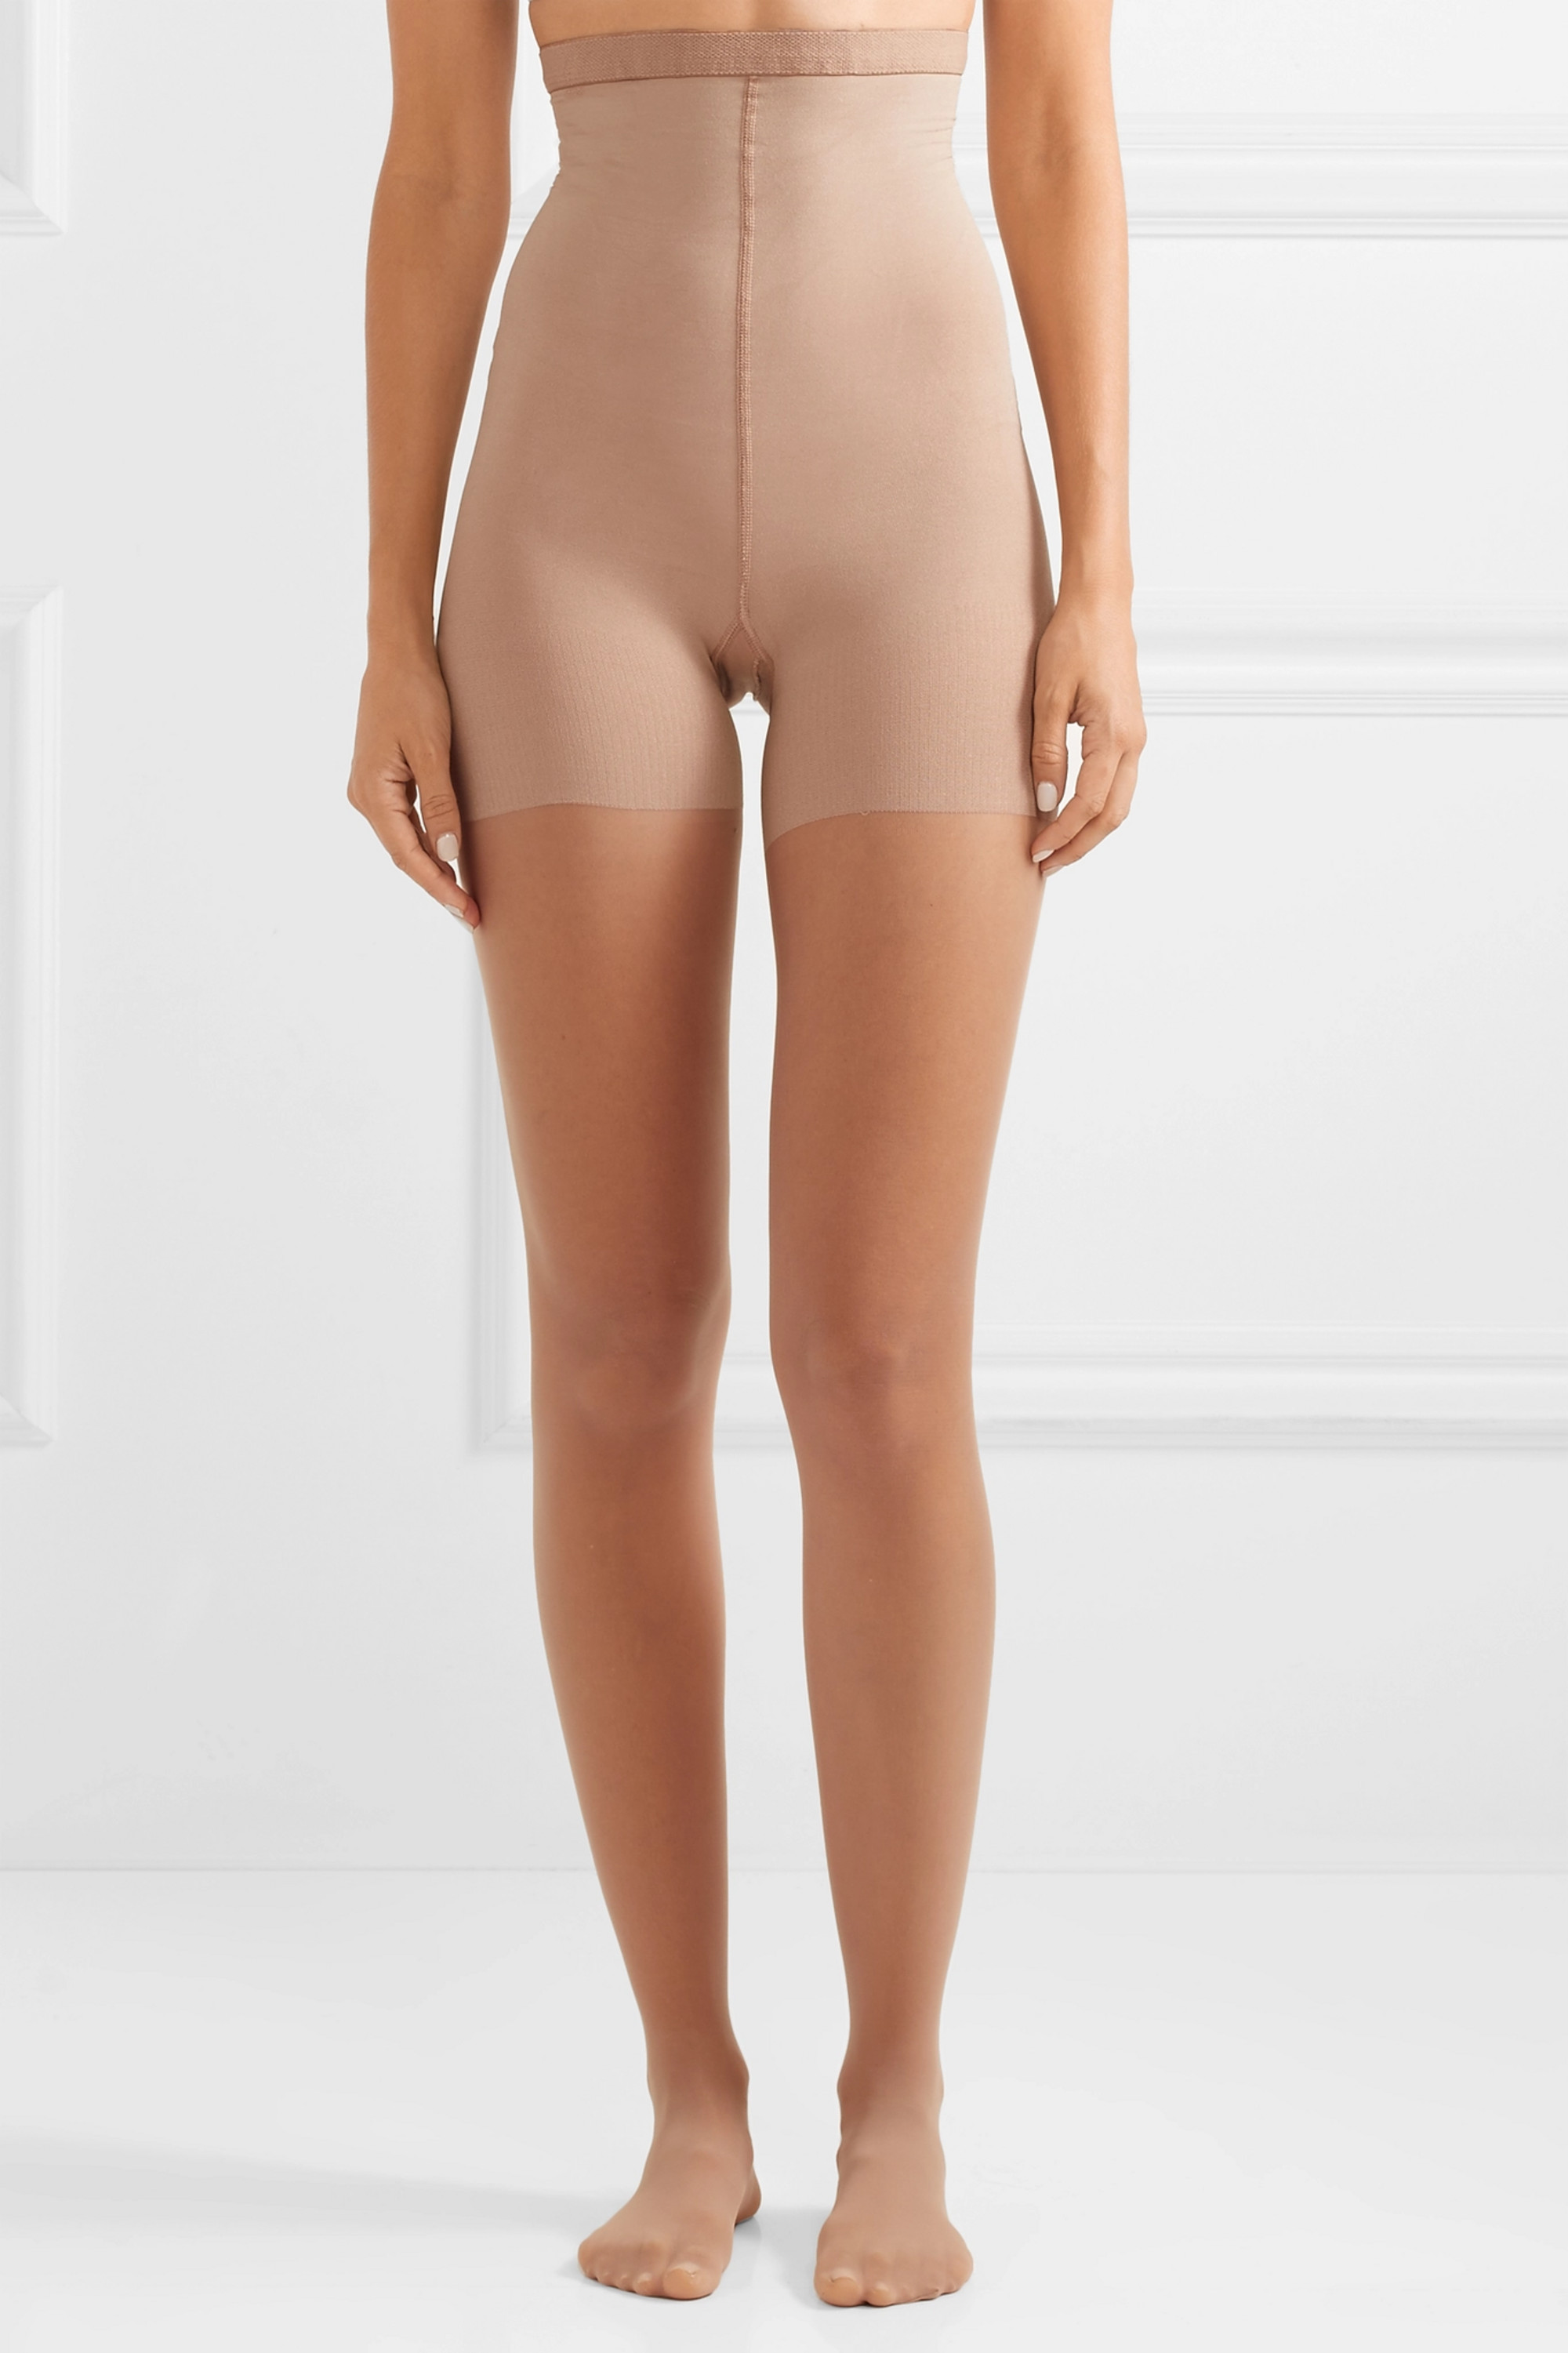 Spanx Luxe Leg high-rise 15 denier shaping tights